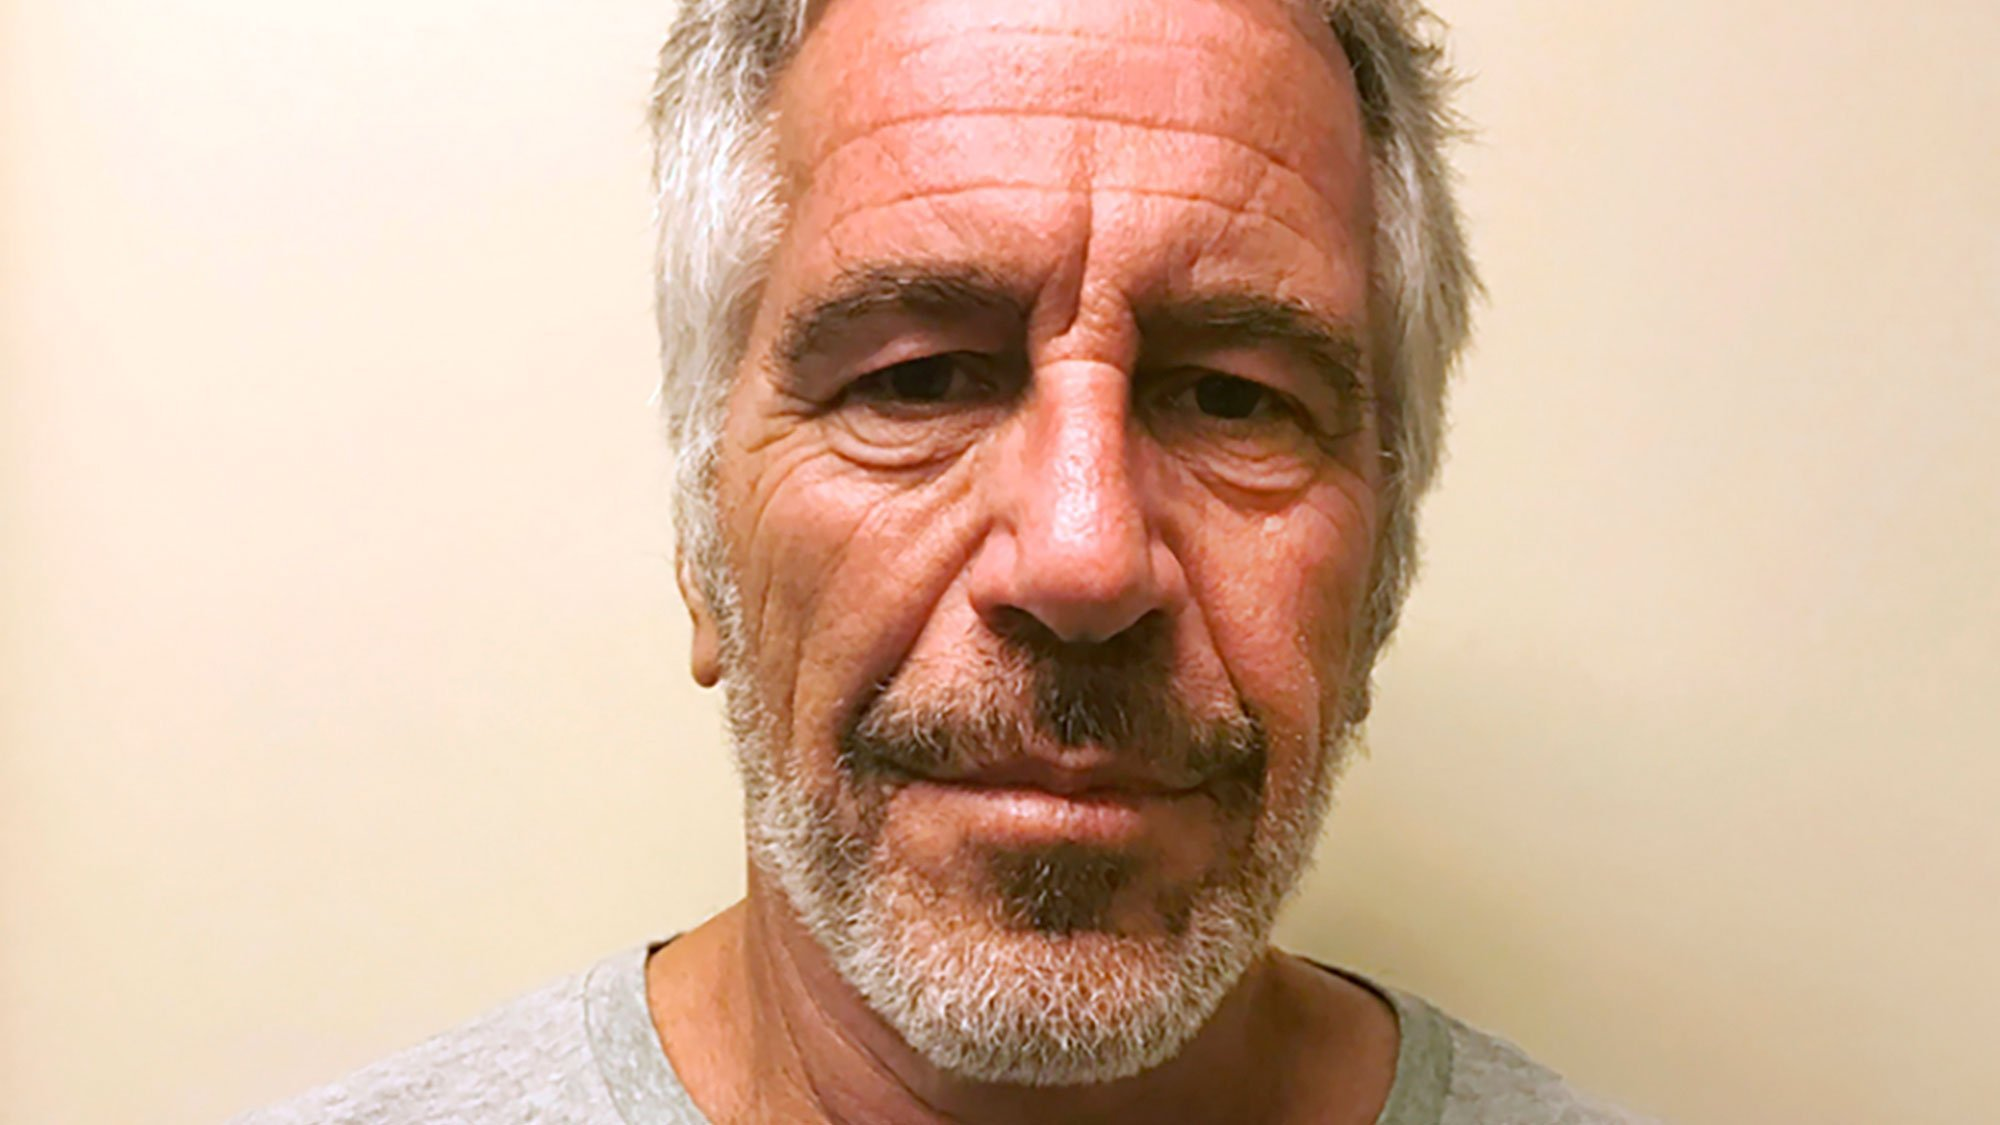 Two women sue Epstein's estate, alleging he abused them in 2004